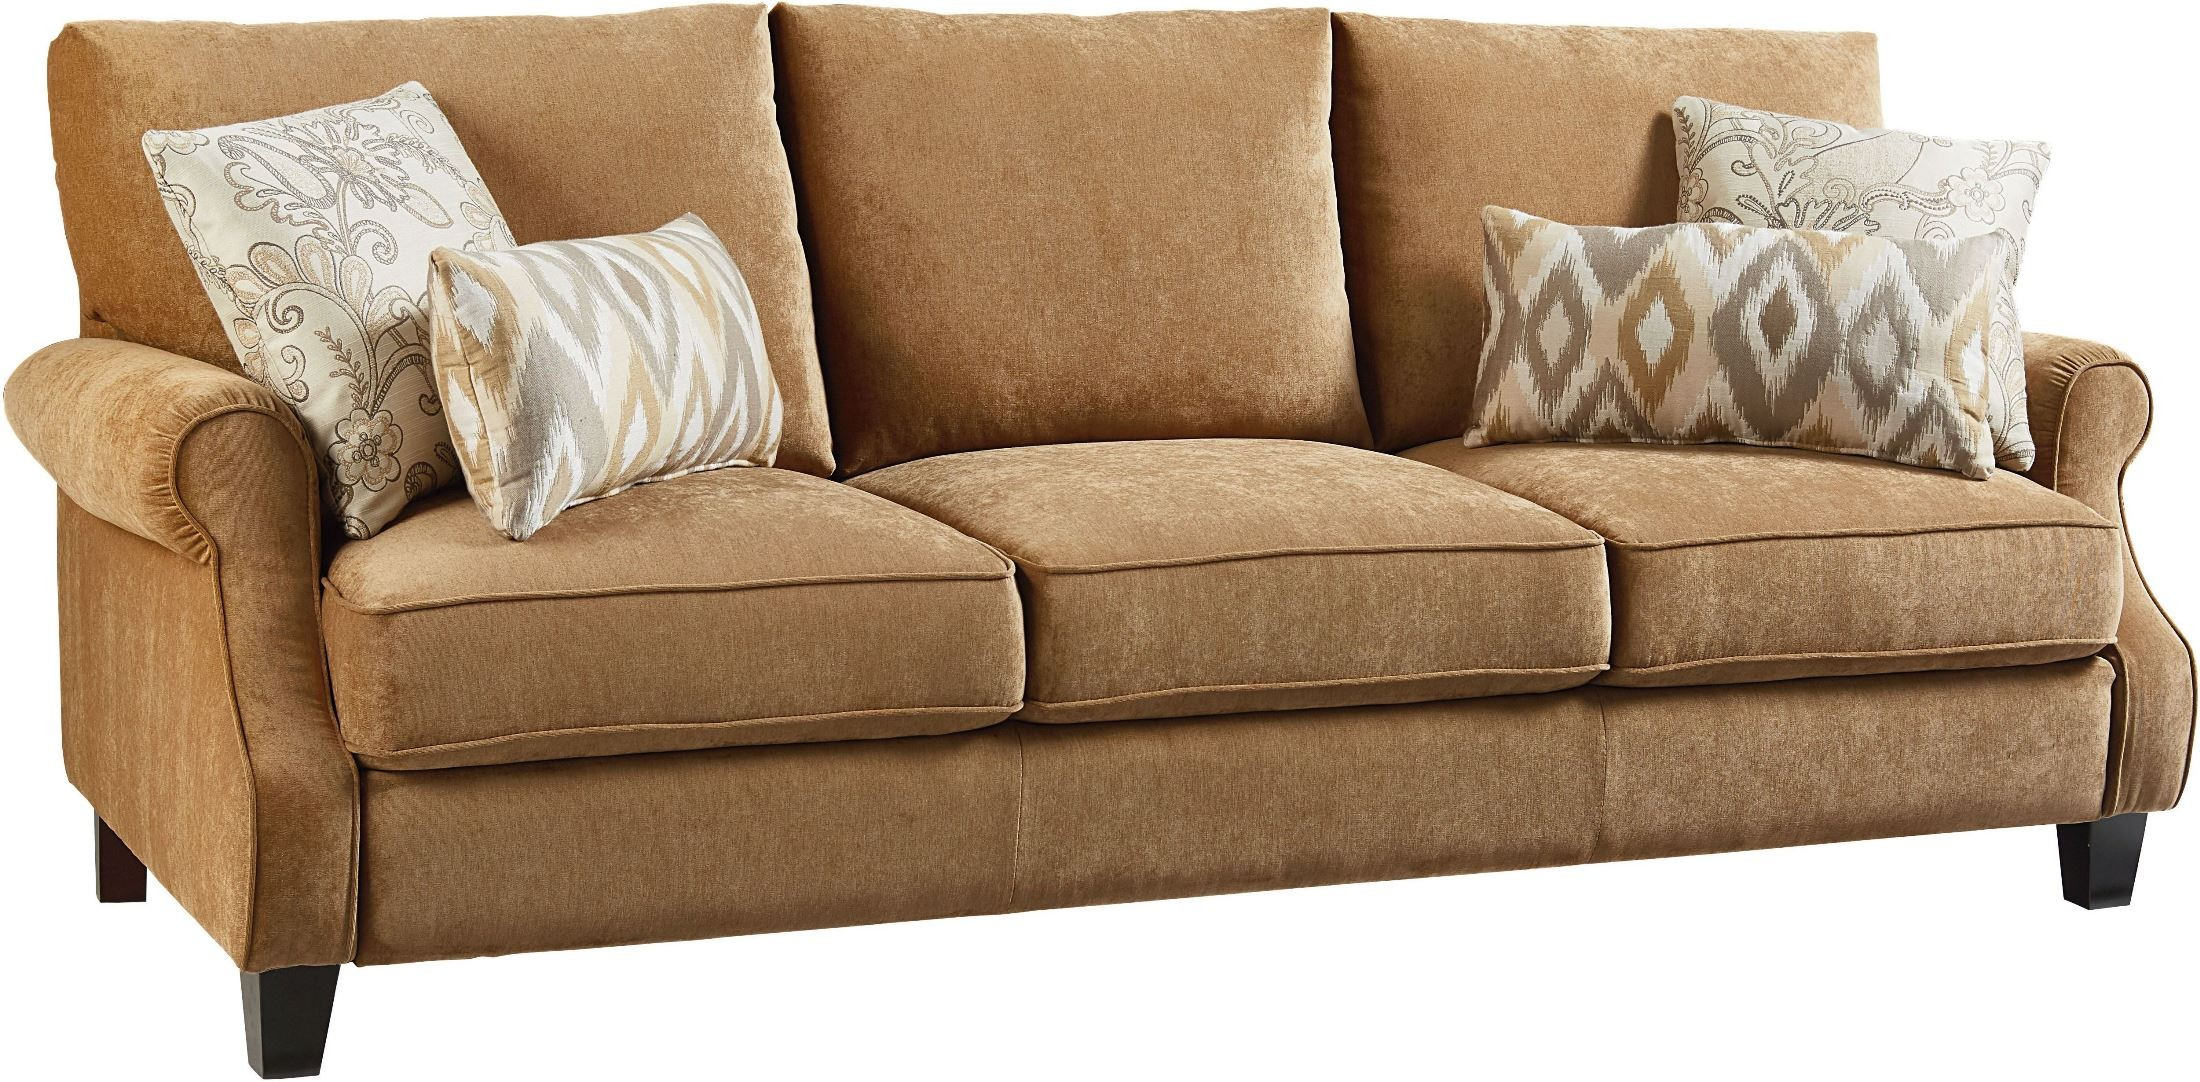 Waverly Antique Brown Sofa From Standard Furniture